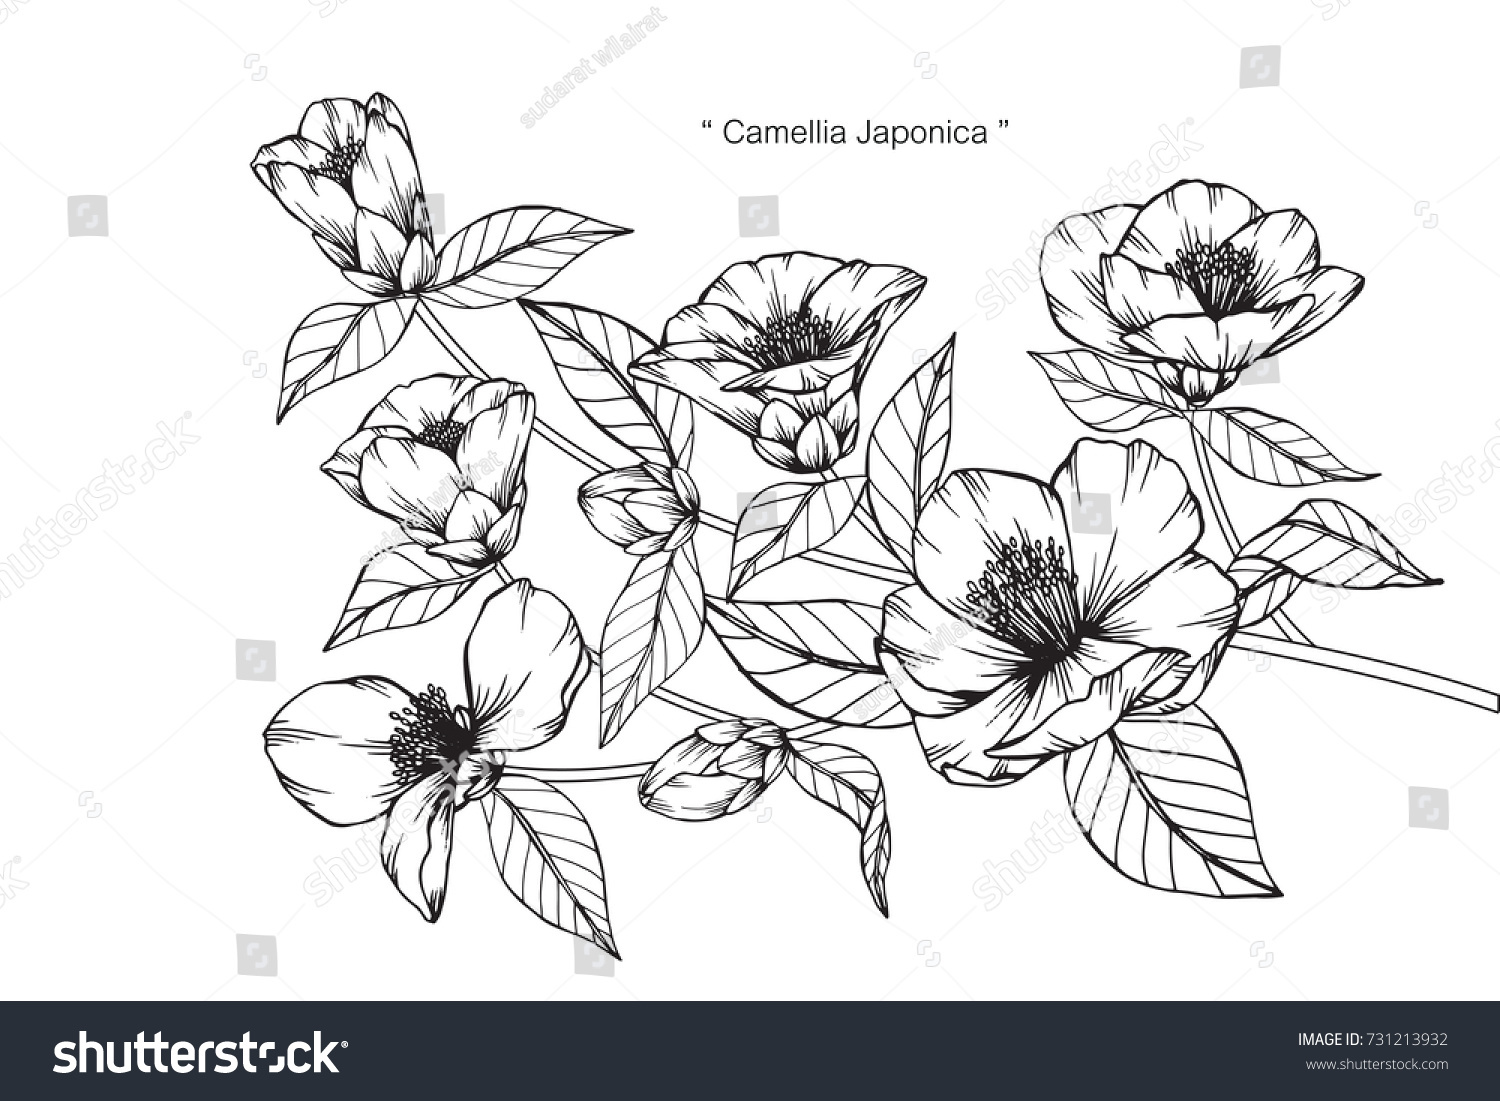 Camellia Flower Line Drawing : Hand drawing sketch camellia japonica flower stock vector